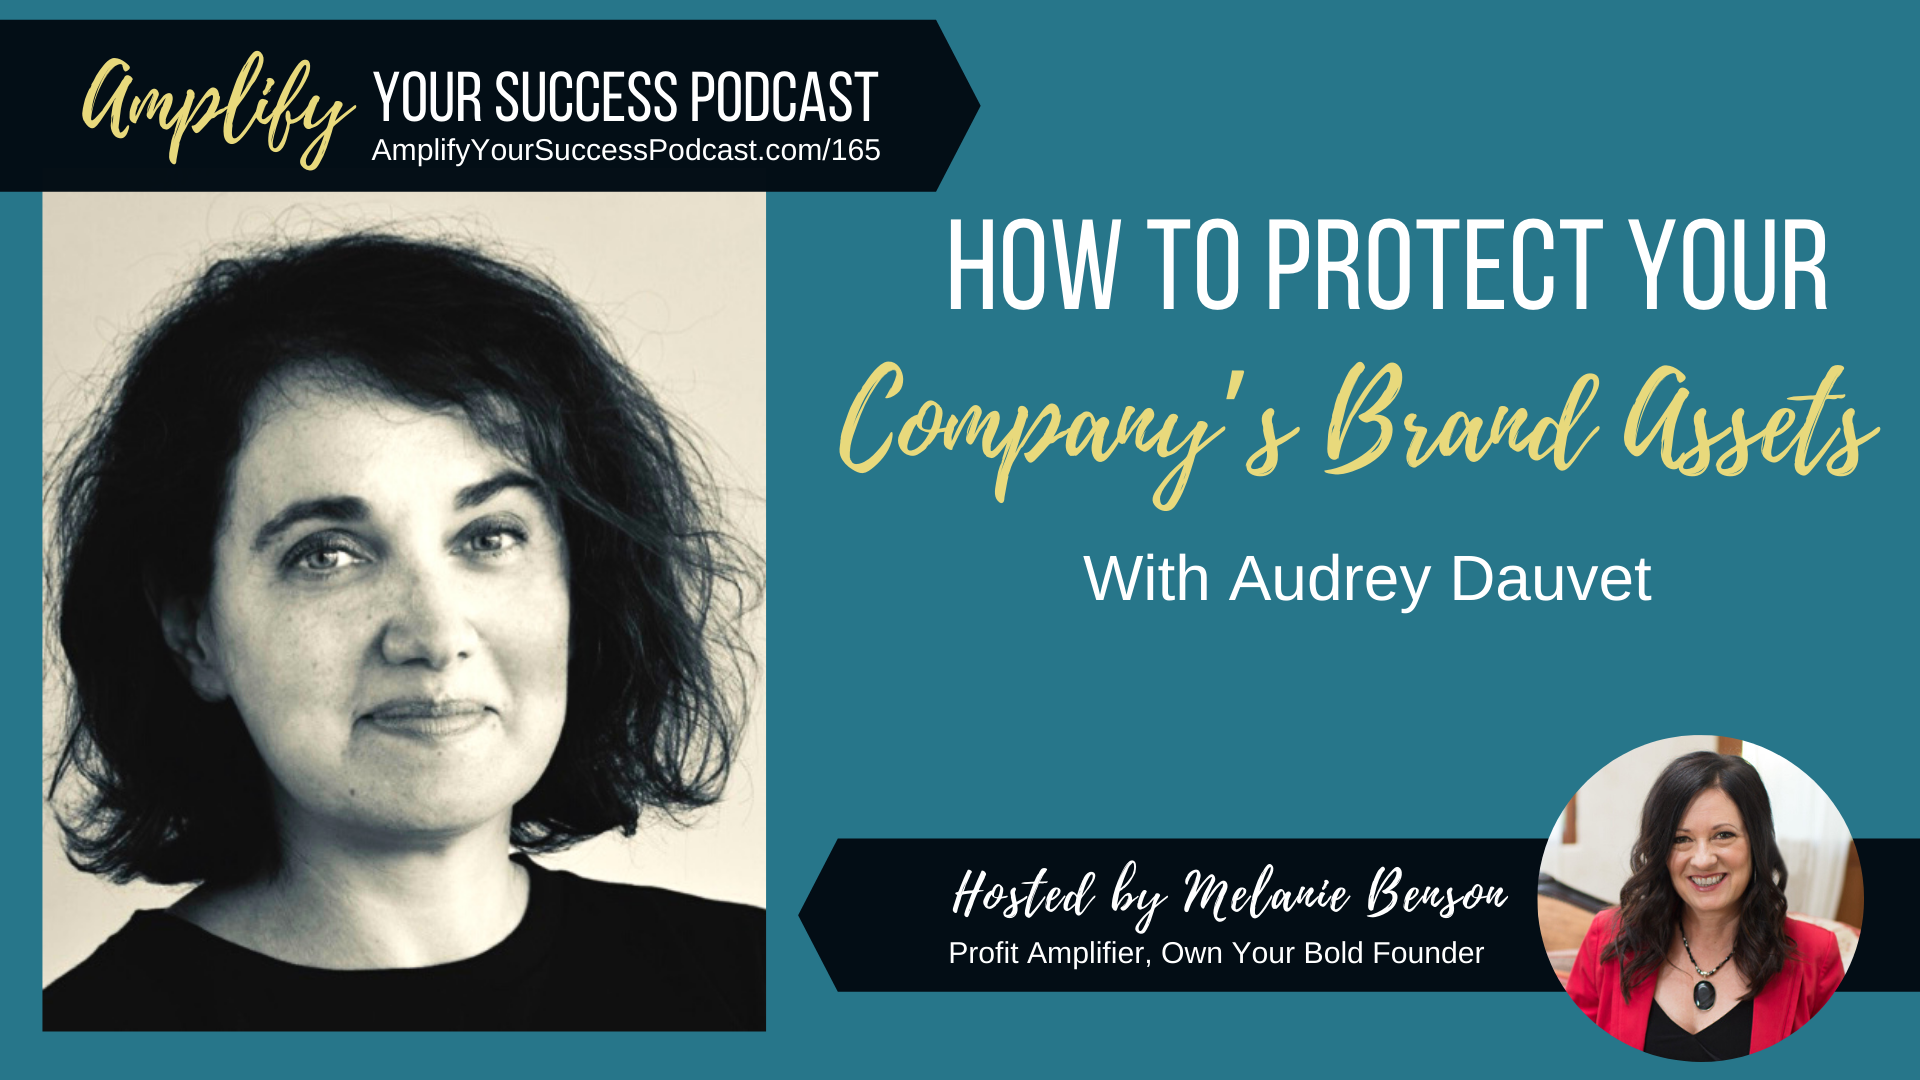 Audrey Dauvet on Amplify Your Success Podcast aboutHow to Protect Your Company's Brand Assets